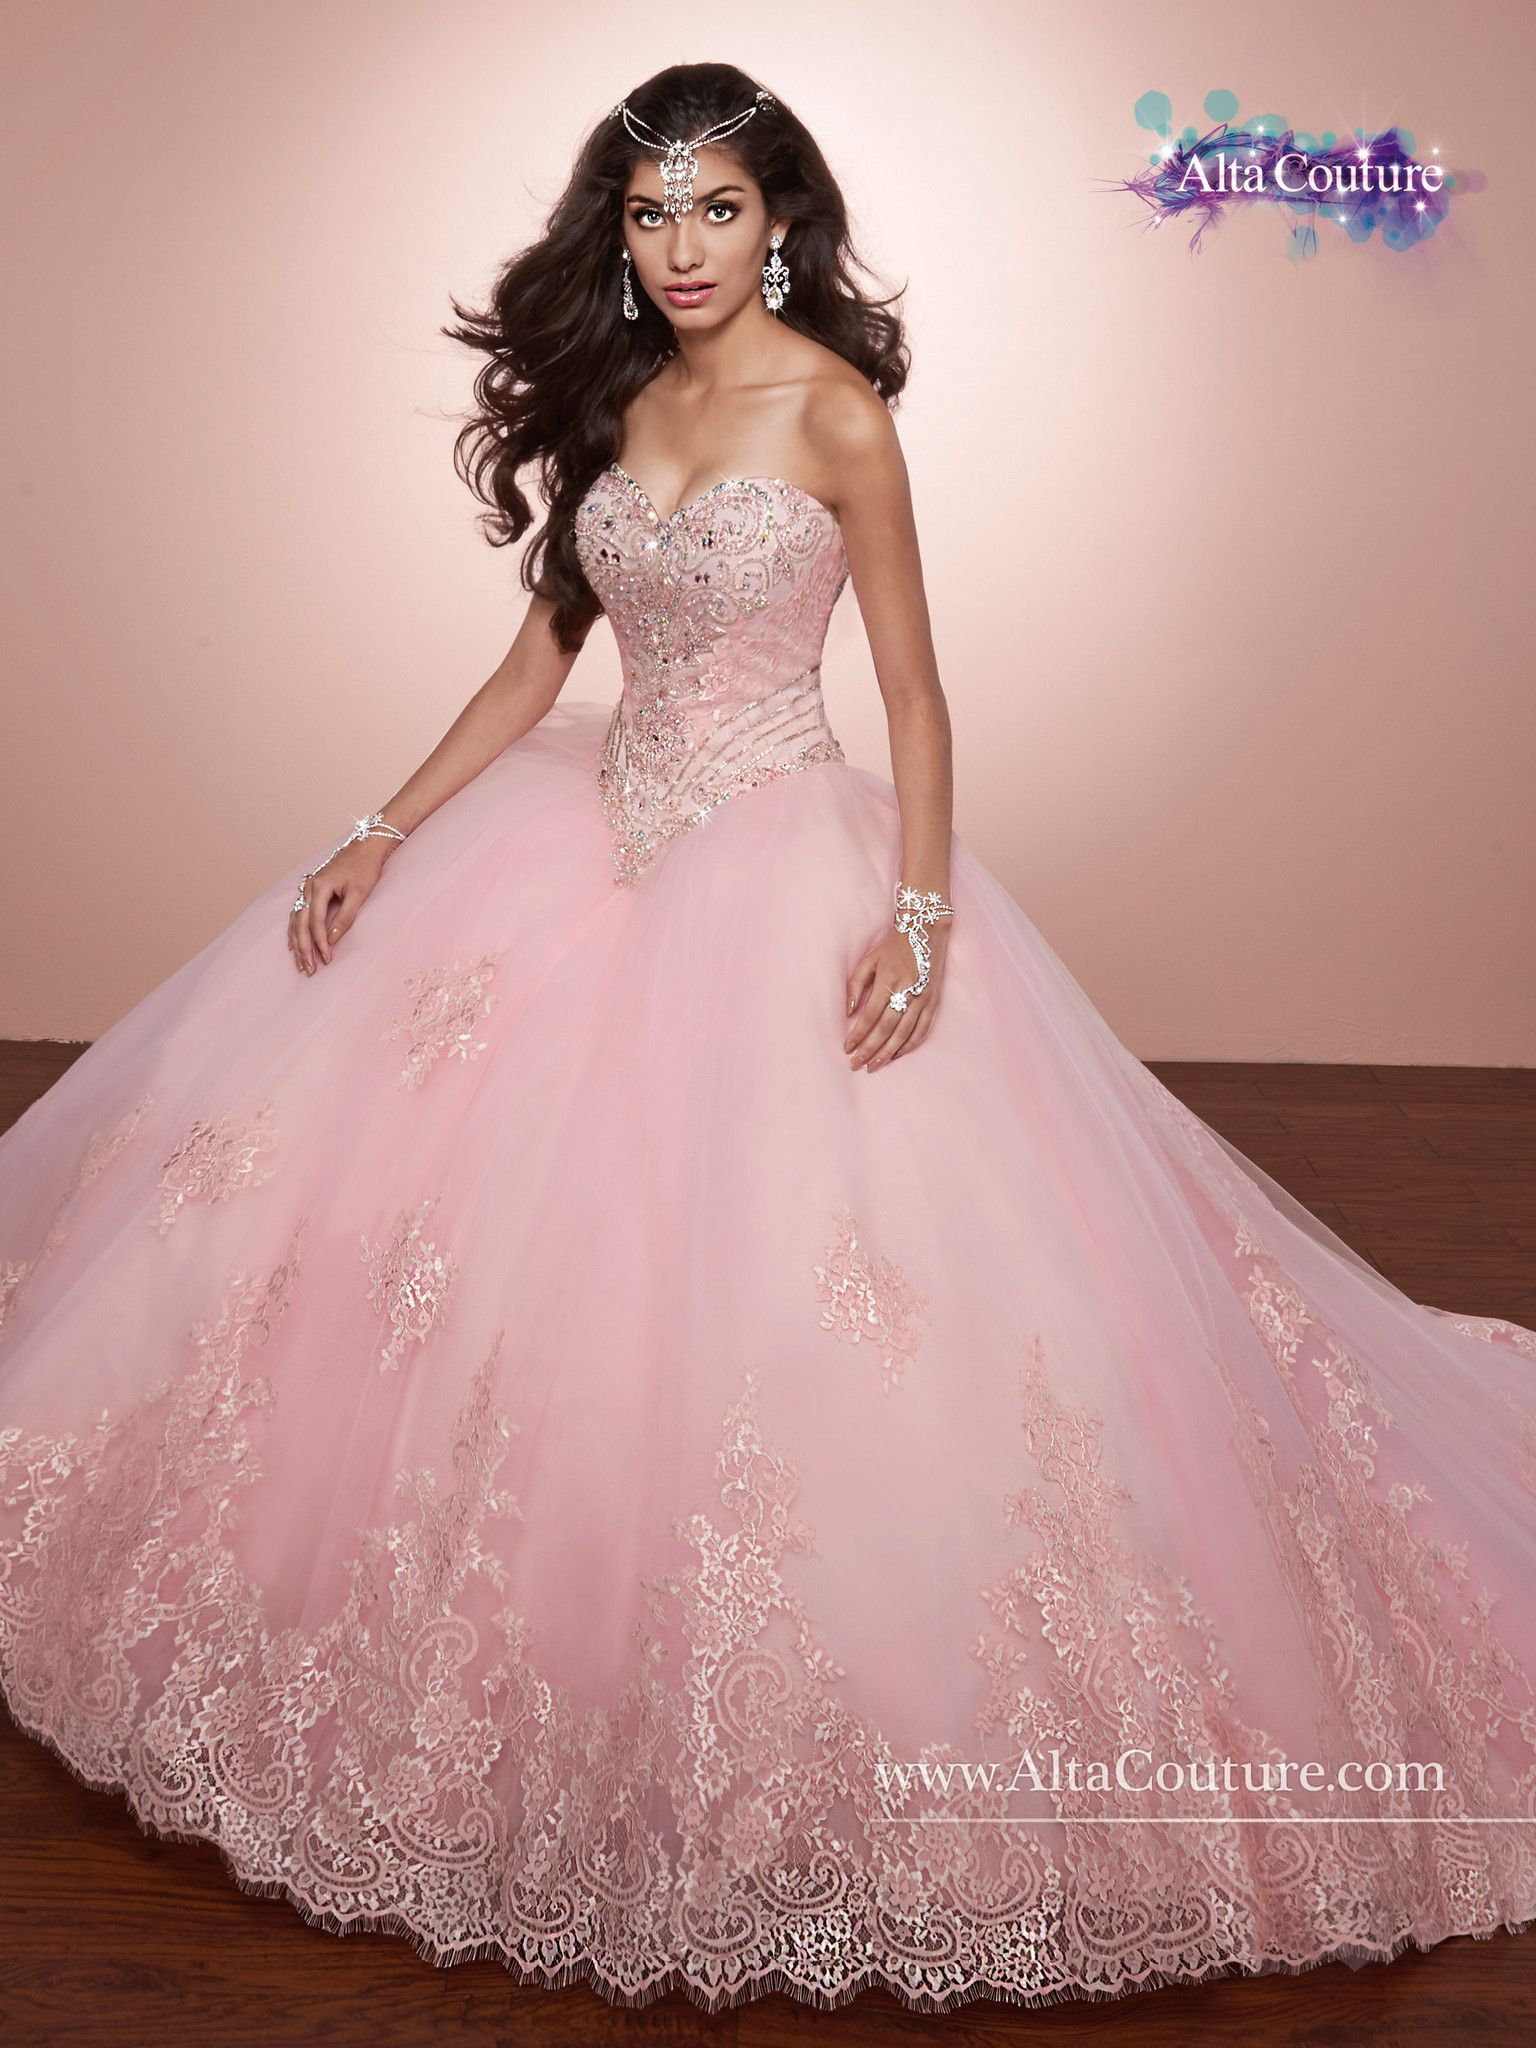 Mary\'s Bridal Alta Couture Quinceanera Dress Style 4T171 | 15 años ...